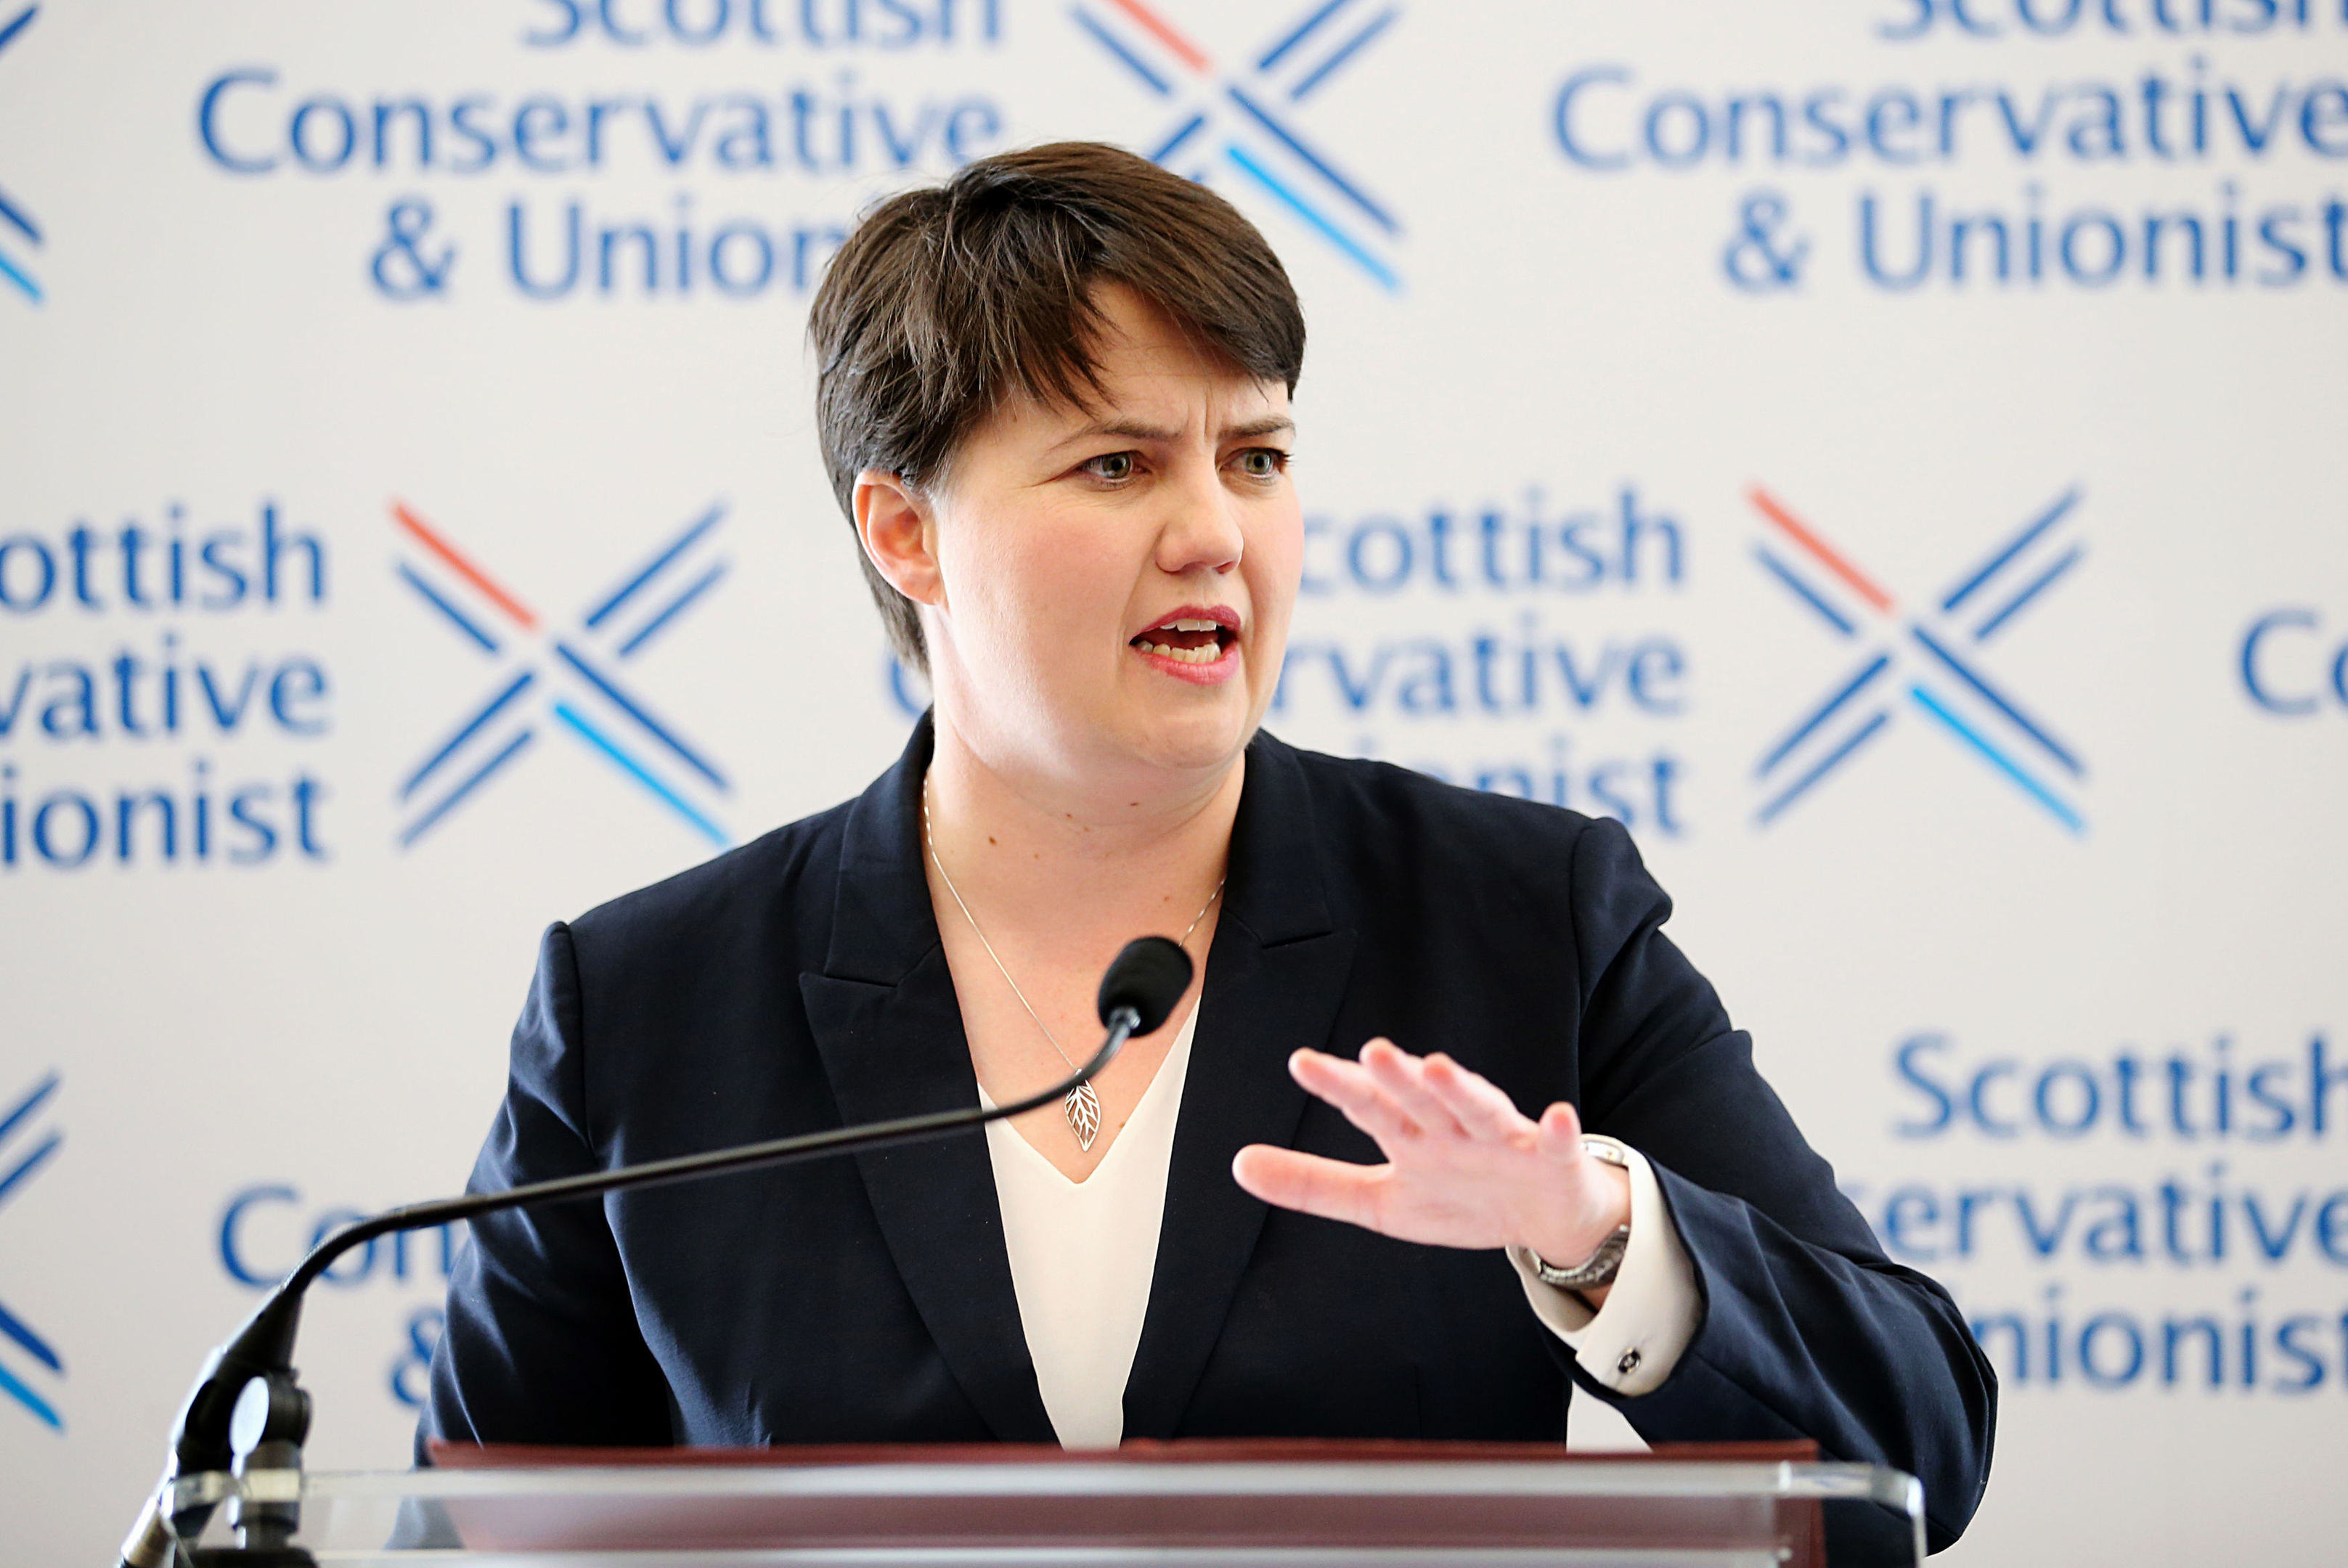 Scottish Conservative leader Ruth Davidson during a press conference at the Apex Waterloo Hotel in Edinburgh. (Jane Barlow/PA Wire)